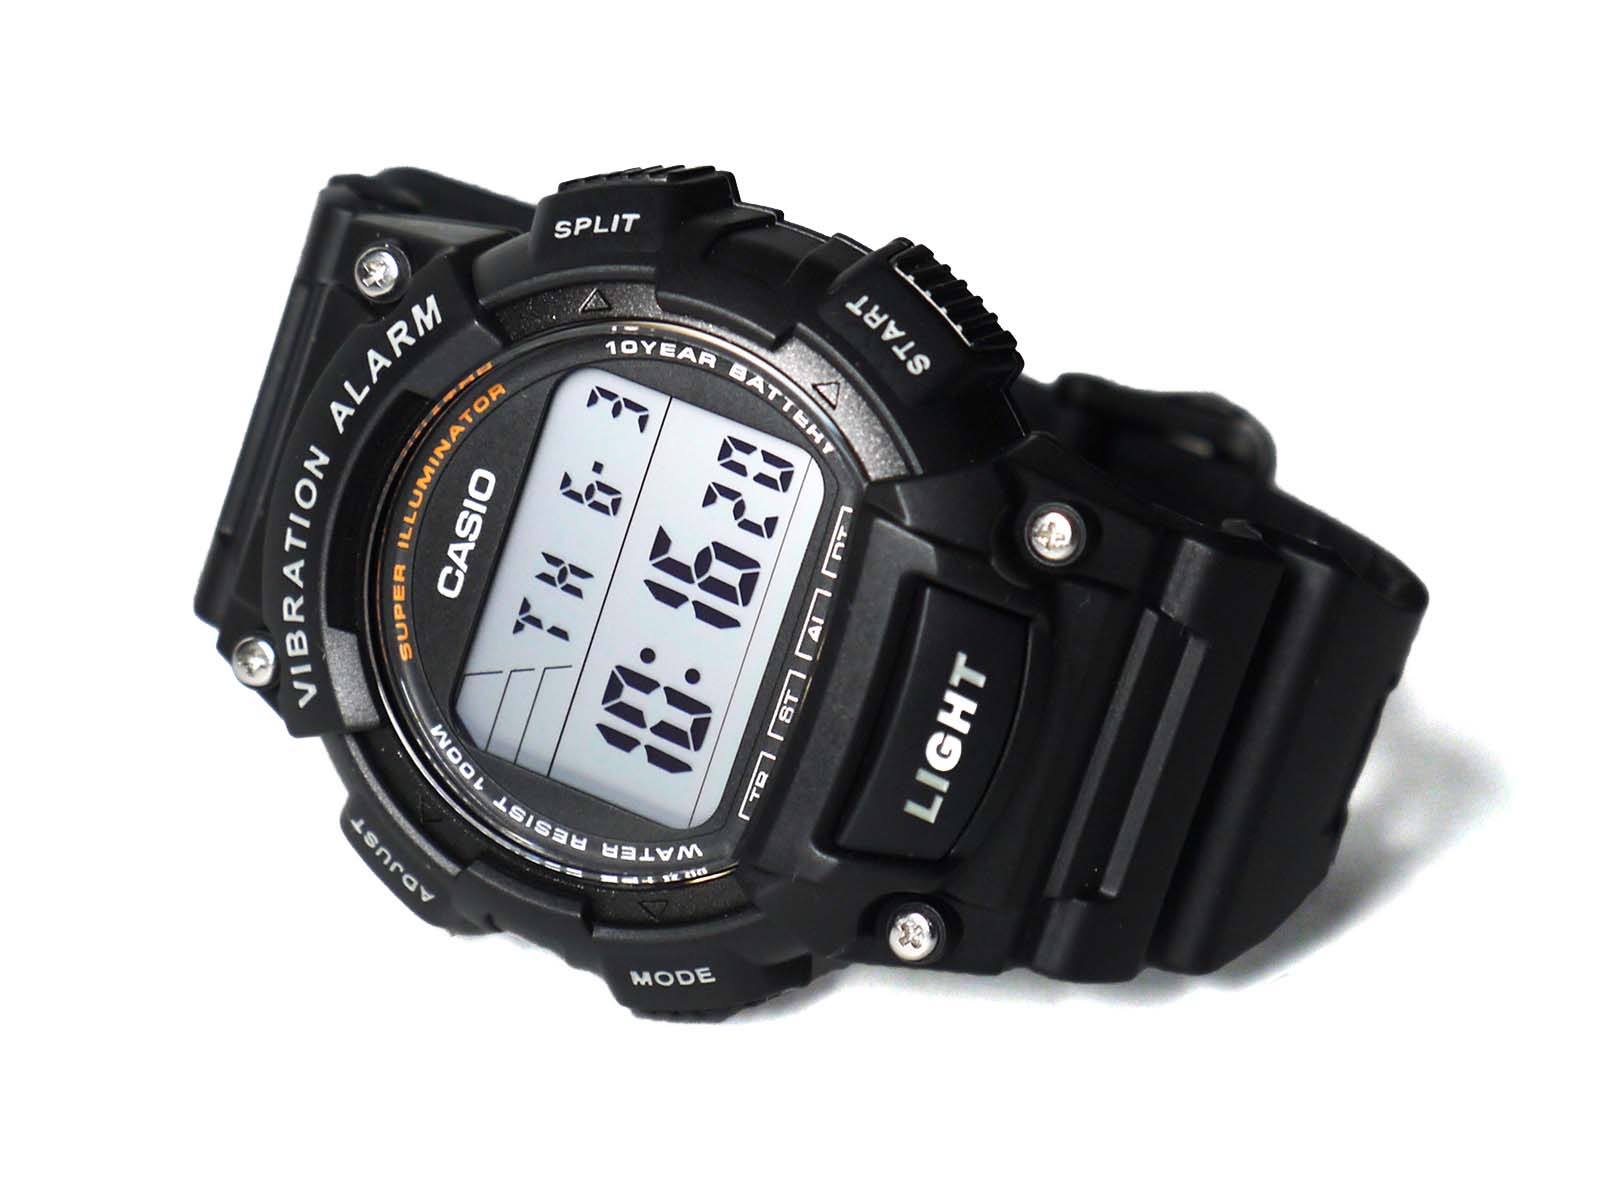 Casio W-736H-1AV vibration alarm watch